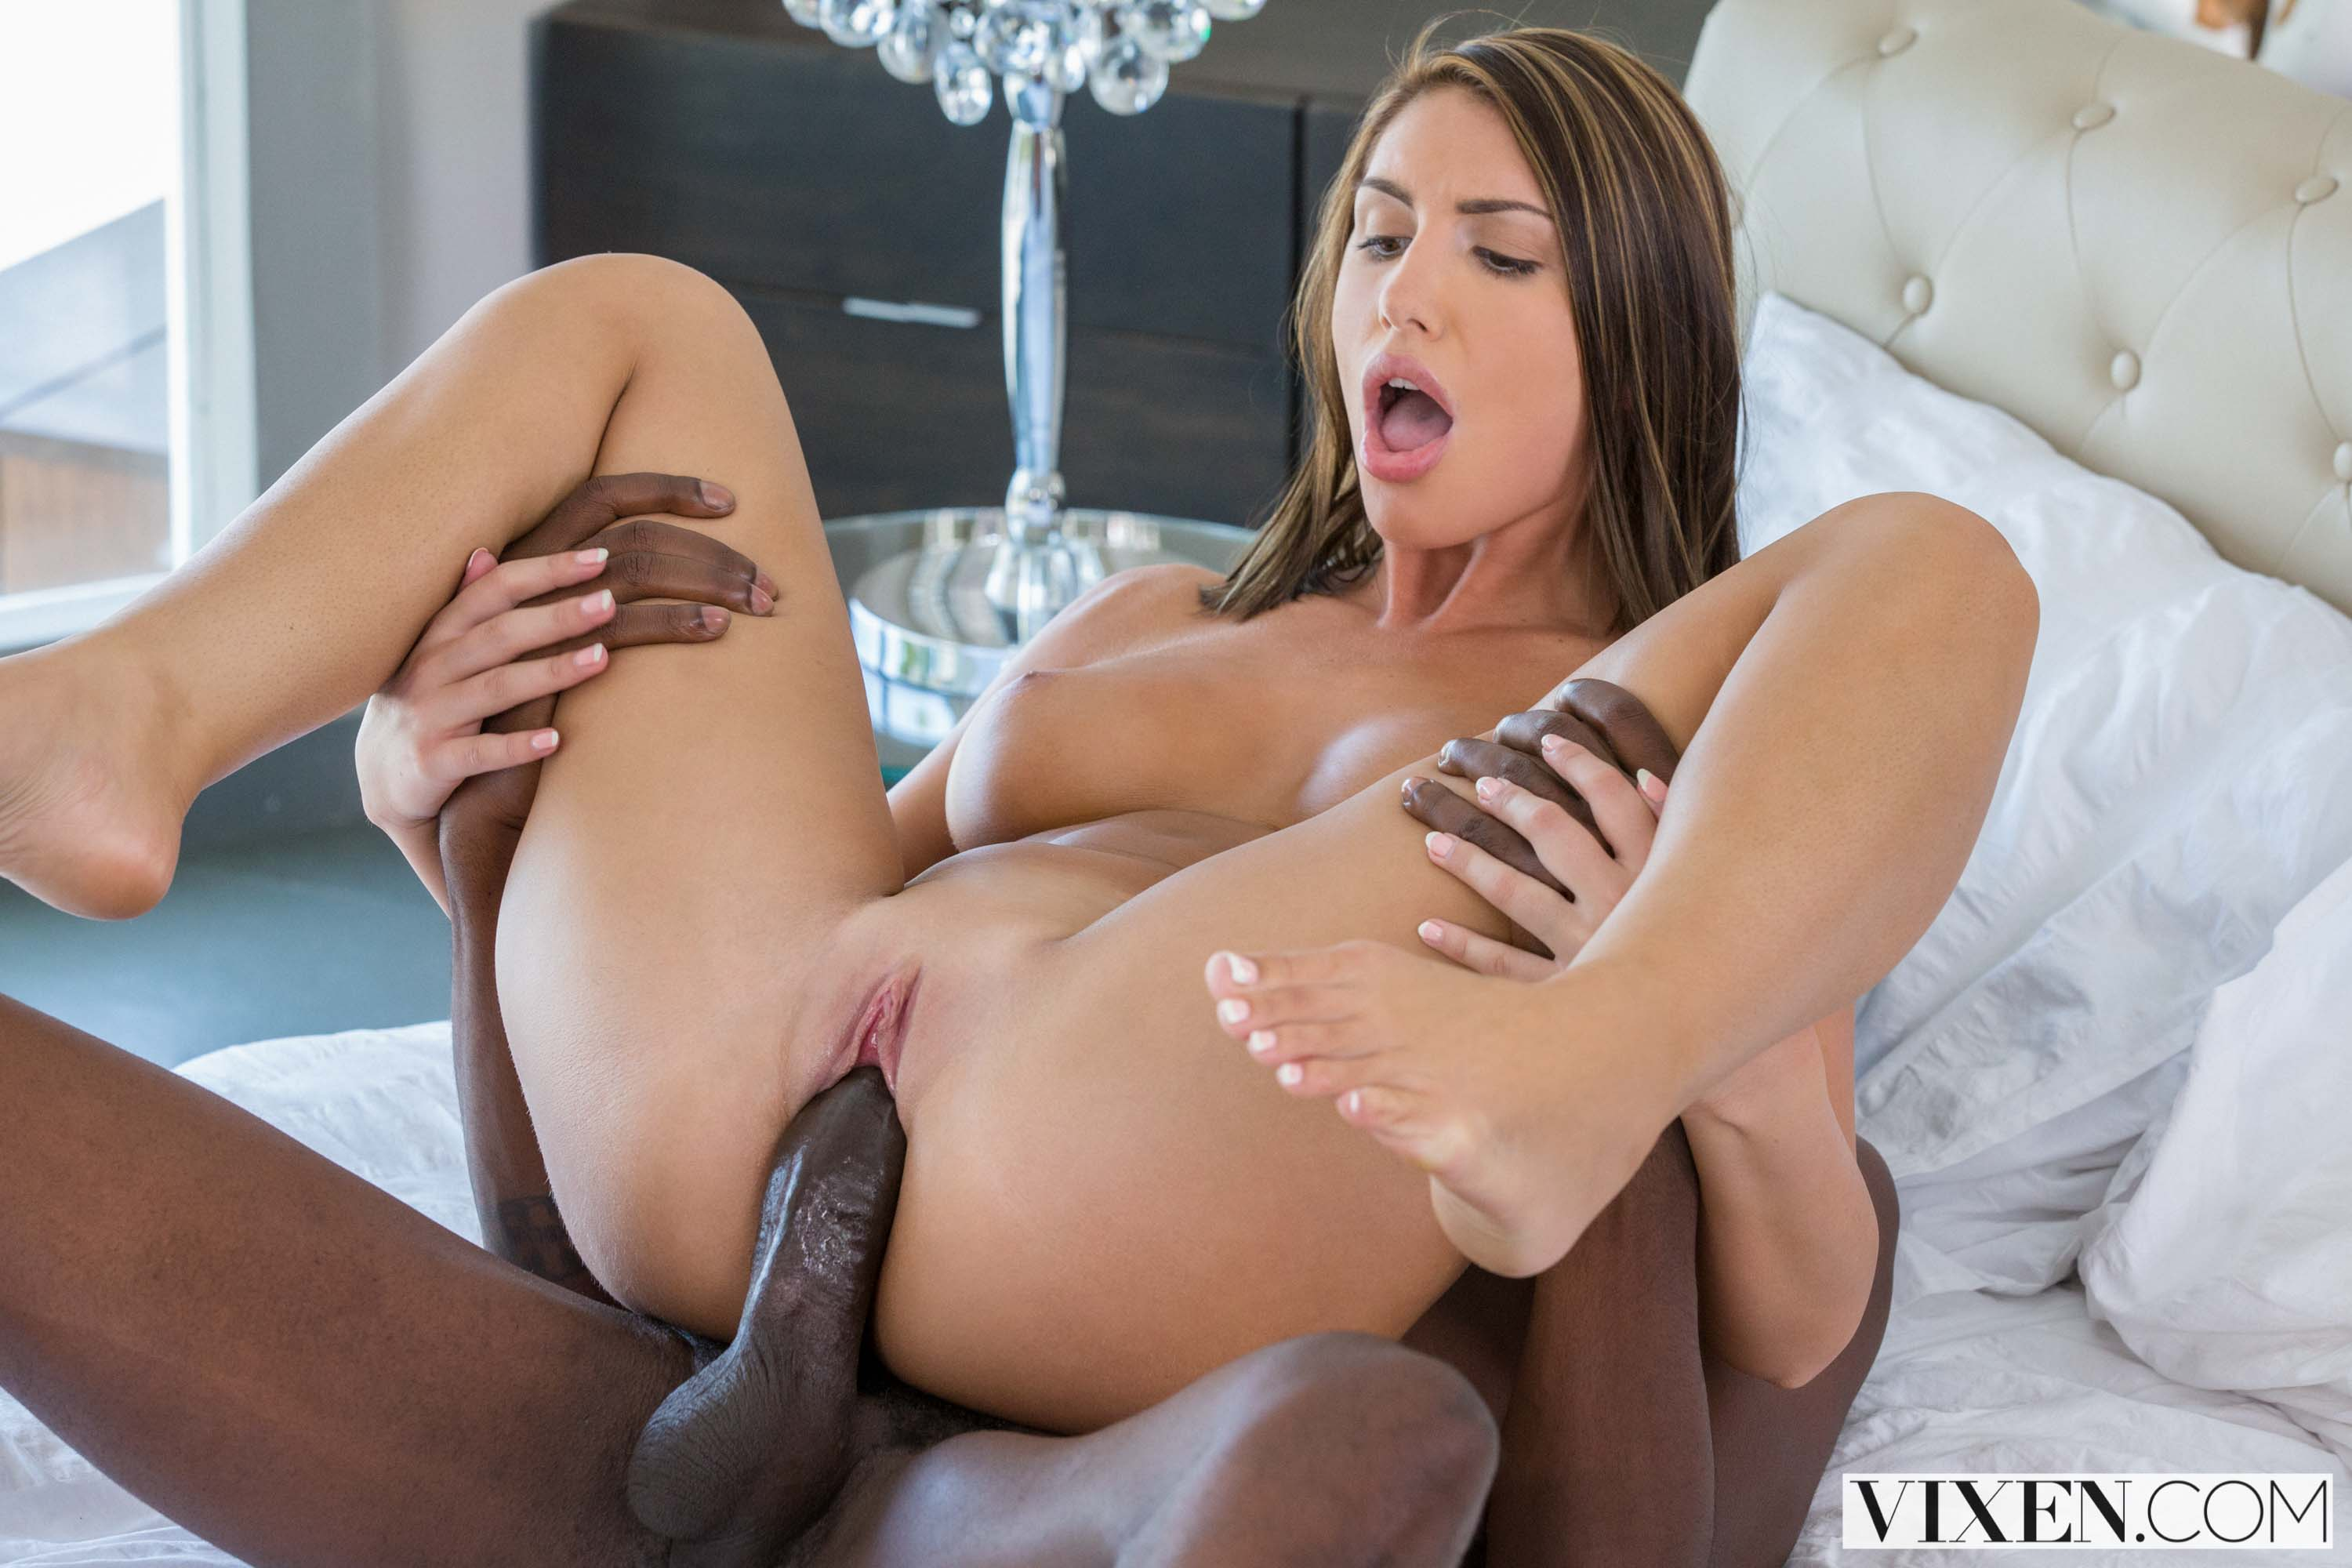 image Tushy my girlfriend megan rain gets fucked in the ass